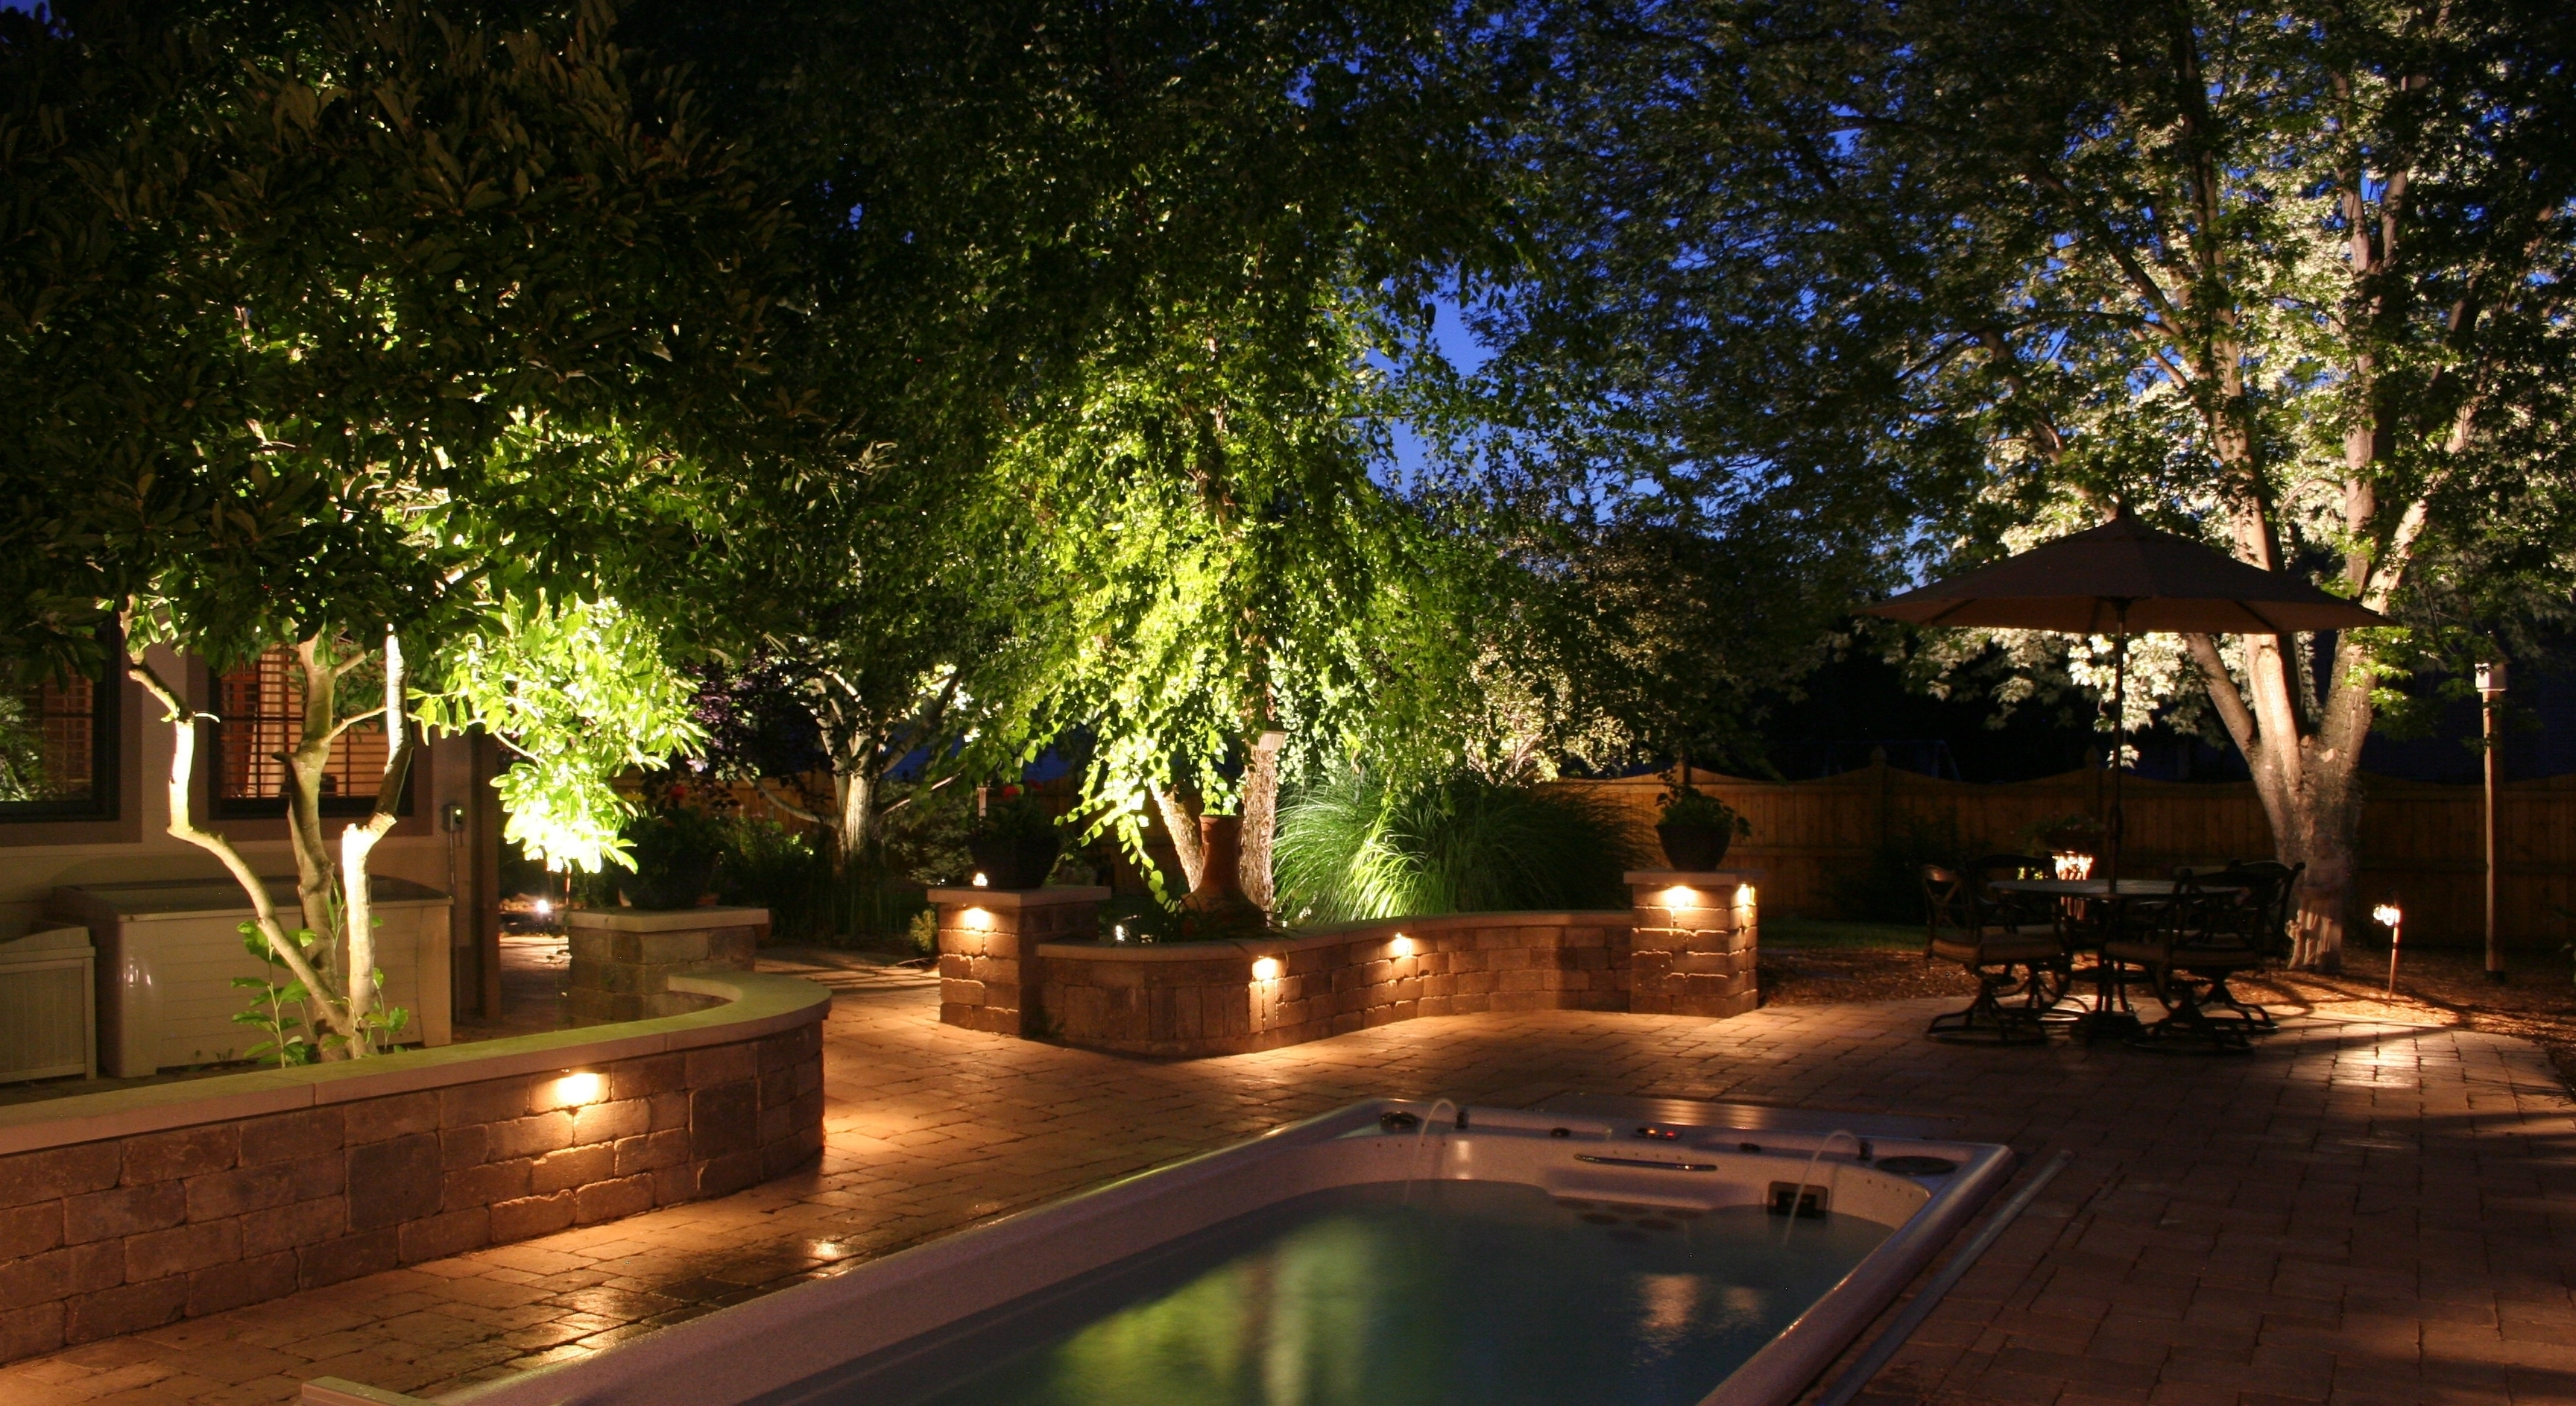 Inspiration about Different Kichler Outdoor Lighting To Get For Your Home – Lighting Within Let Outdoor Kichler Lighting (#13 of 15)